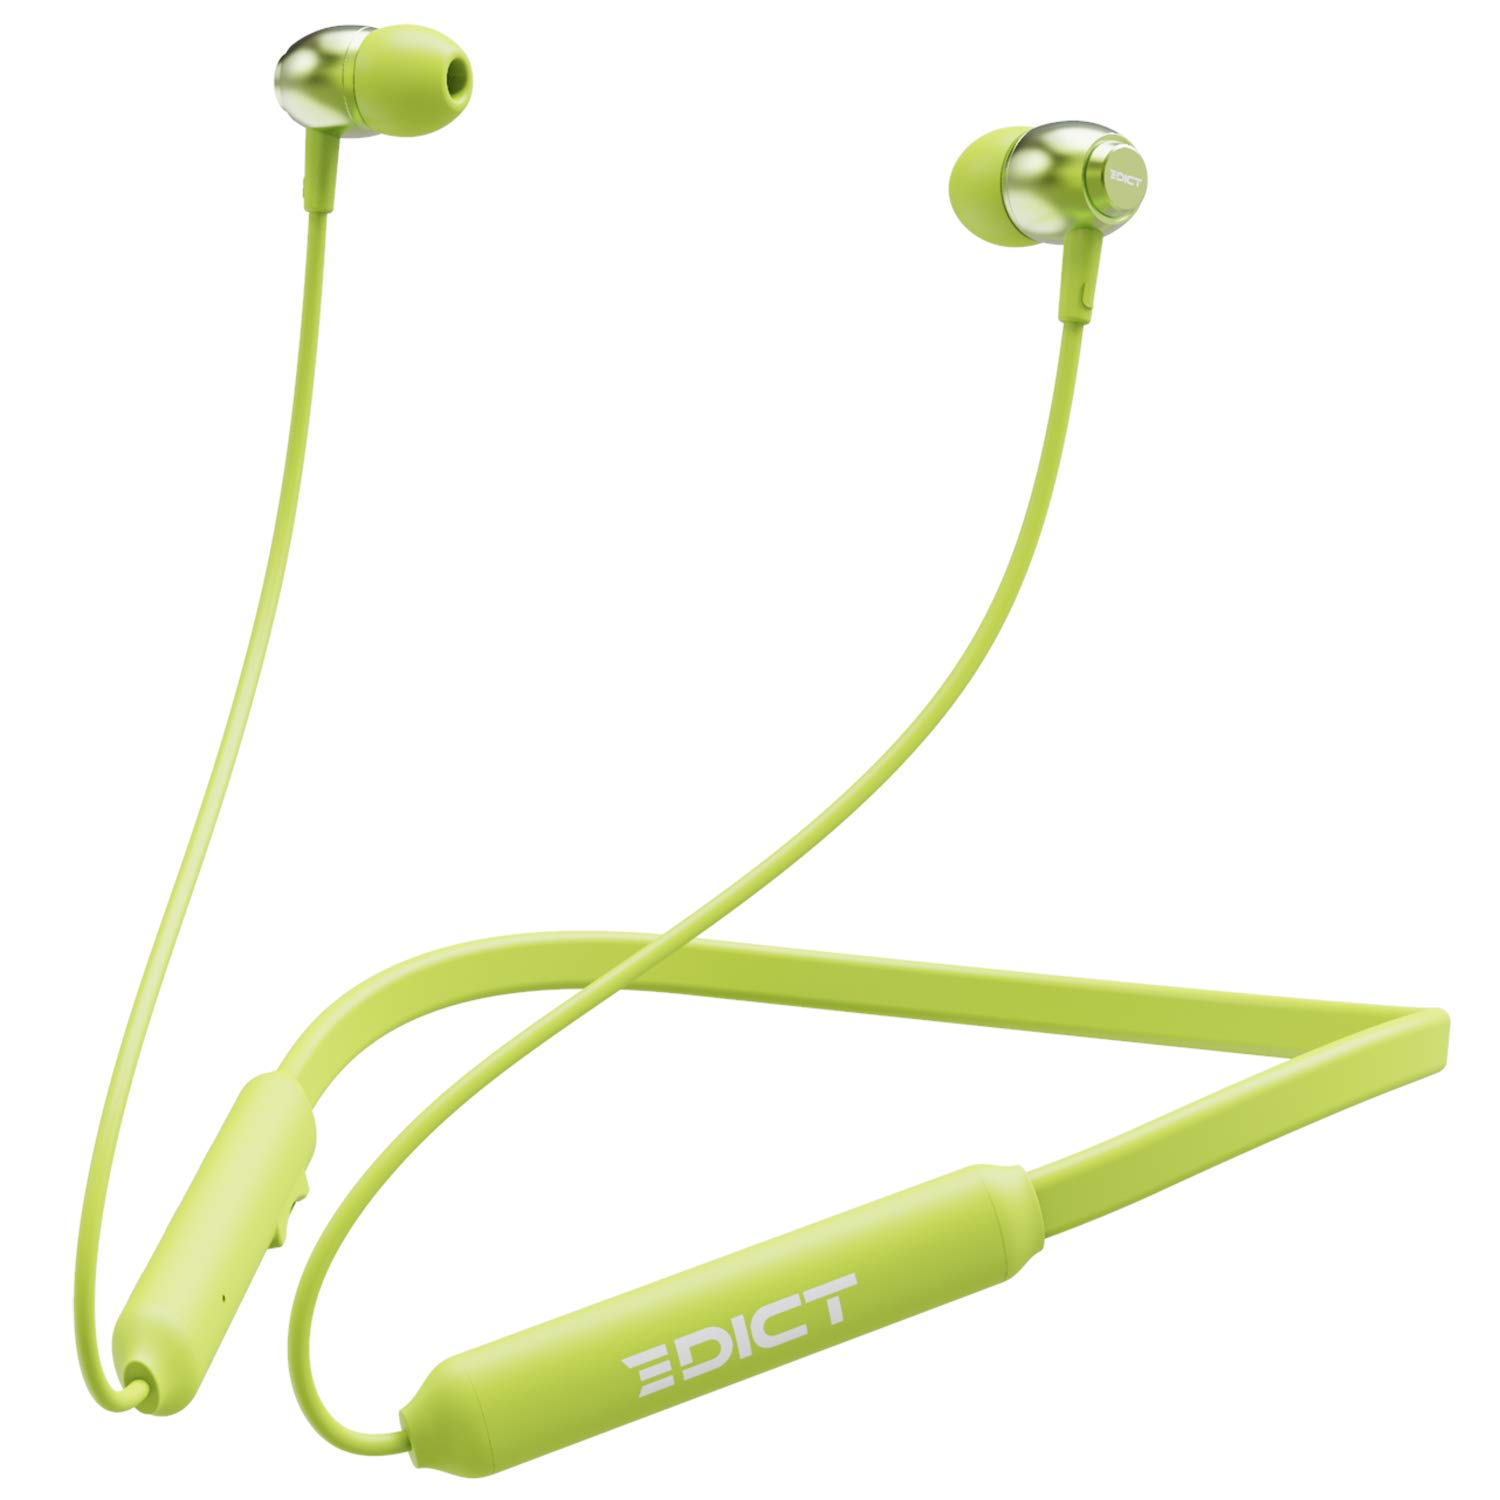 EDICT by boAt EWE02 in-Ear Wireless Neckband with Bluetooth V5.0, Engaging Sound, Comfort-fit Lightweight Design,Dual Pairing,IPX4 Water & Sweat Resistance, Up to 8H Playtime and Voice Assistant(Lime)